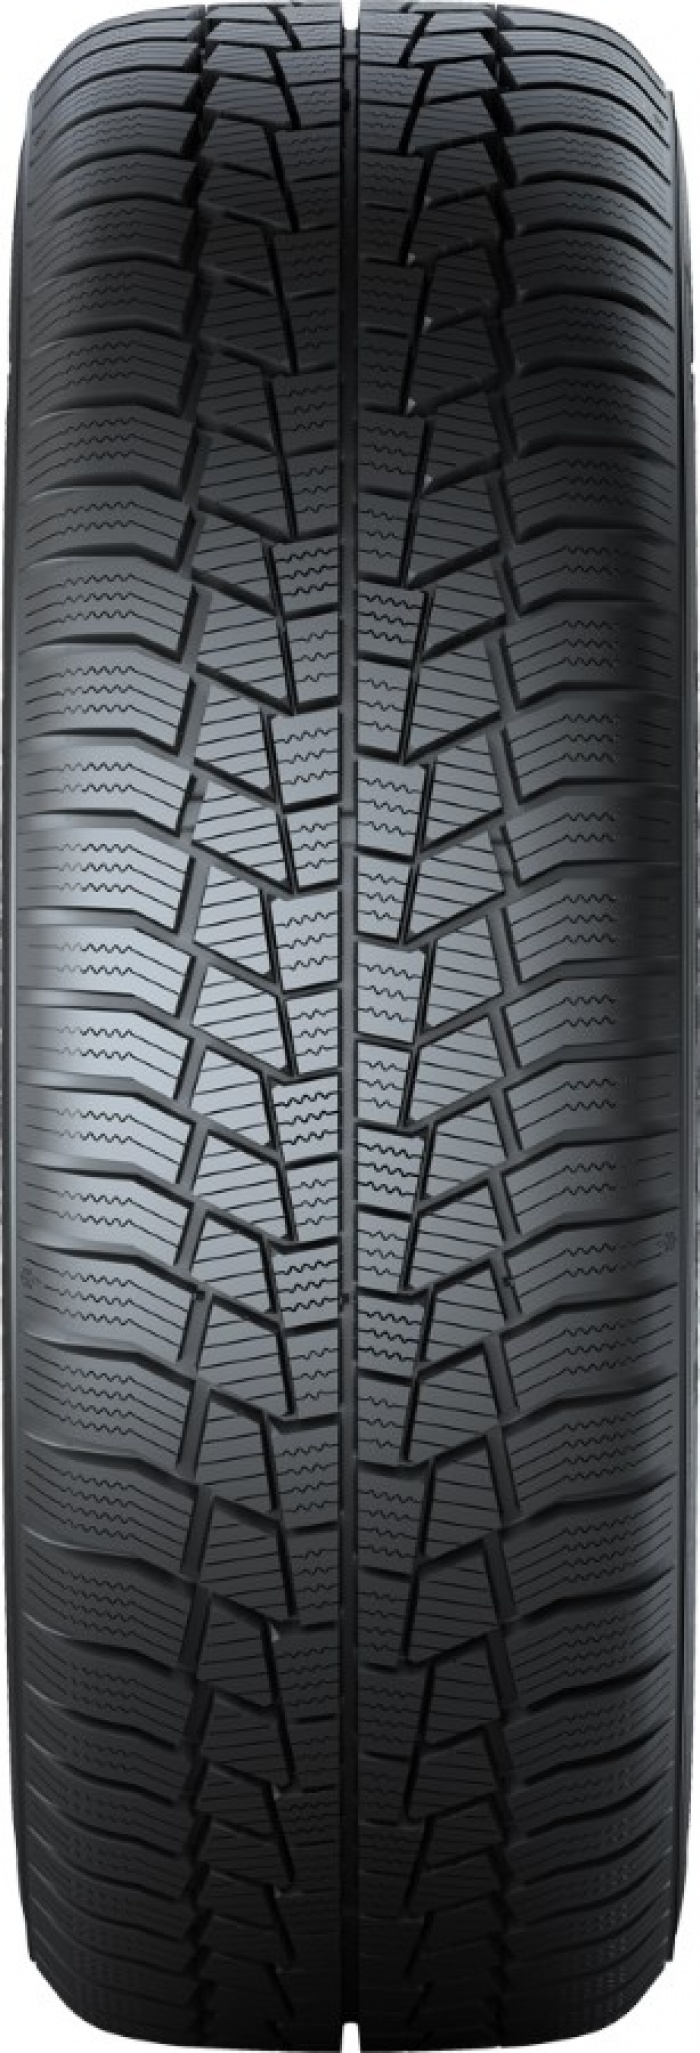 Gislaved Euro Frost 6 215/55 R16 97H  не шип